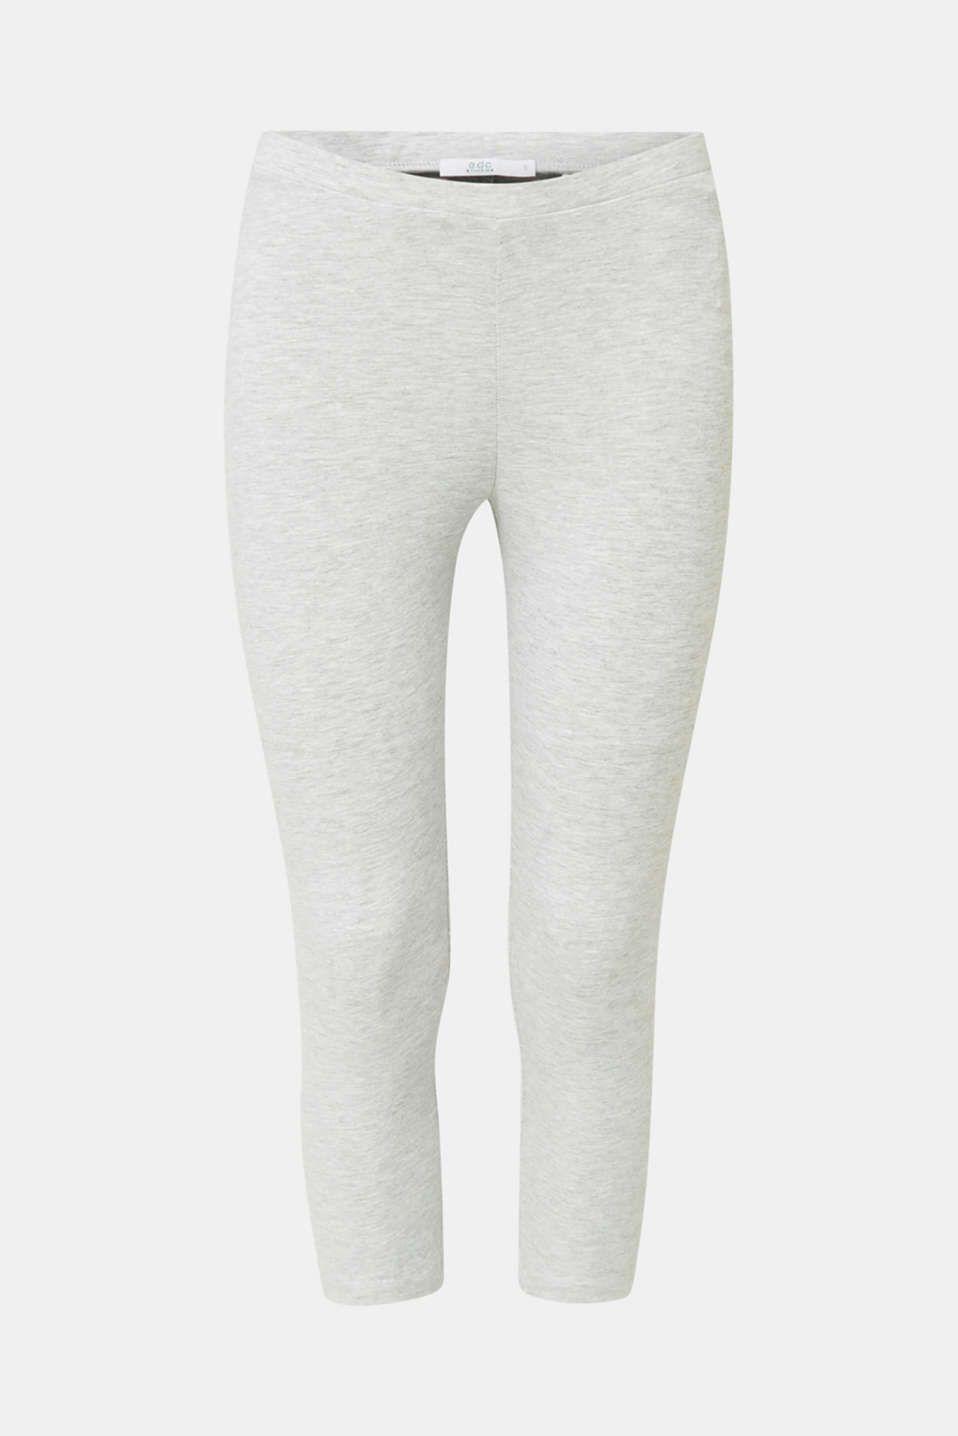 Opaque capri leggings, LIGHT GREY 5, detail image number 6